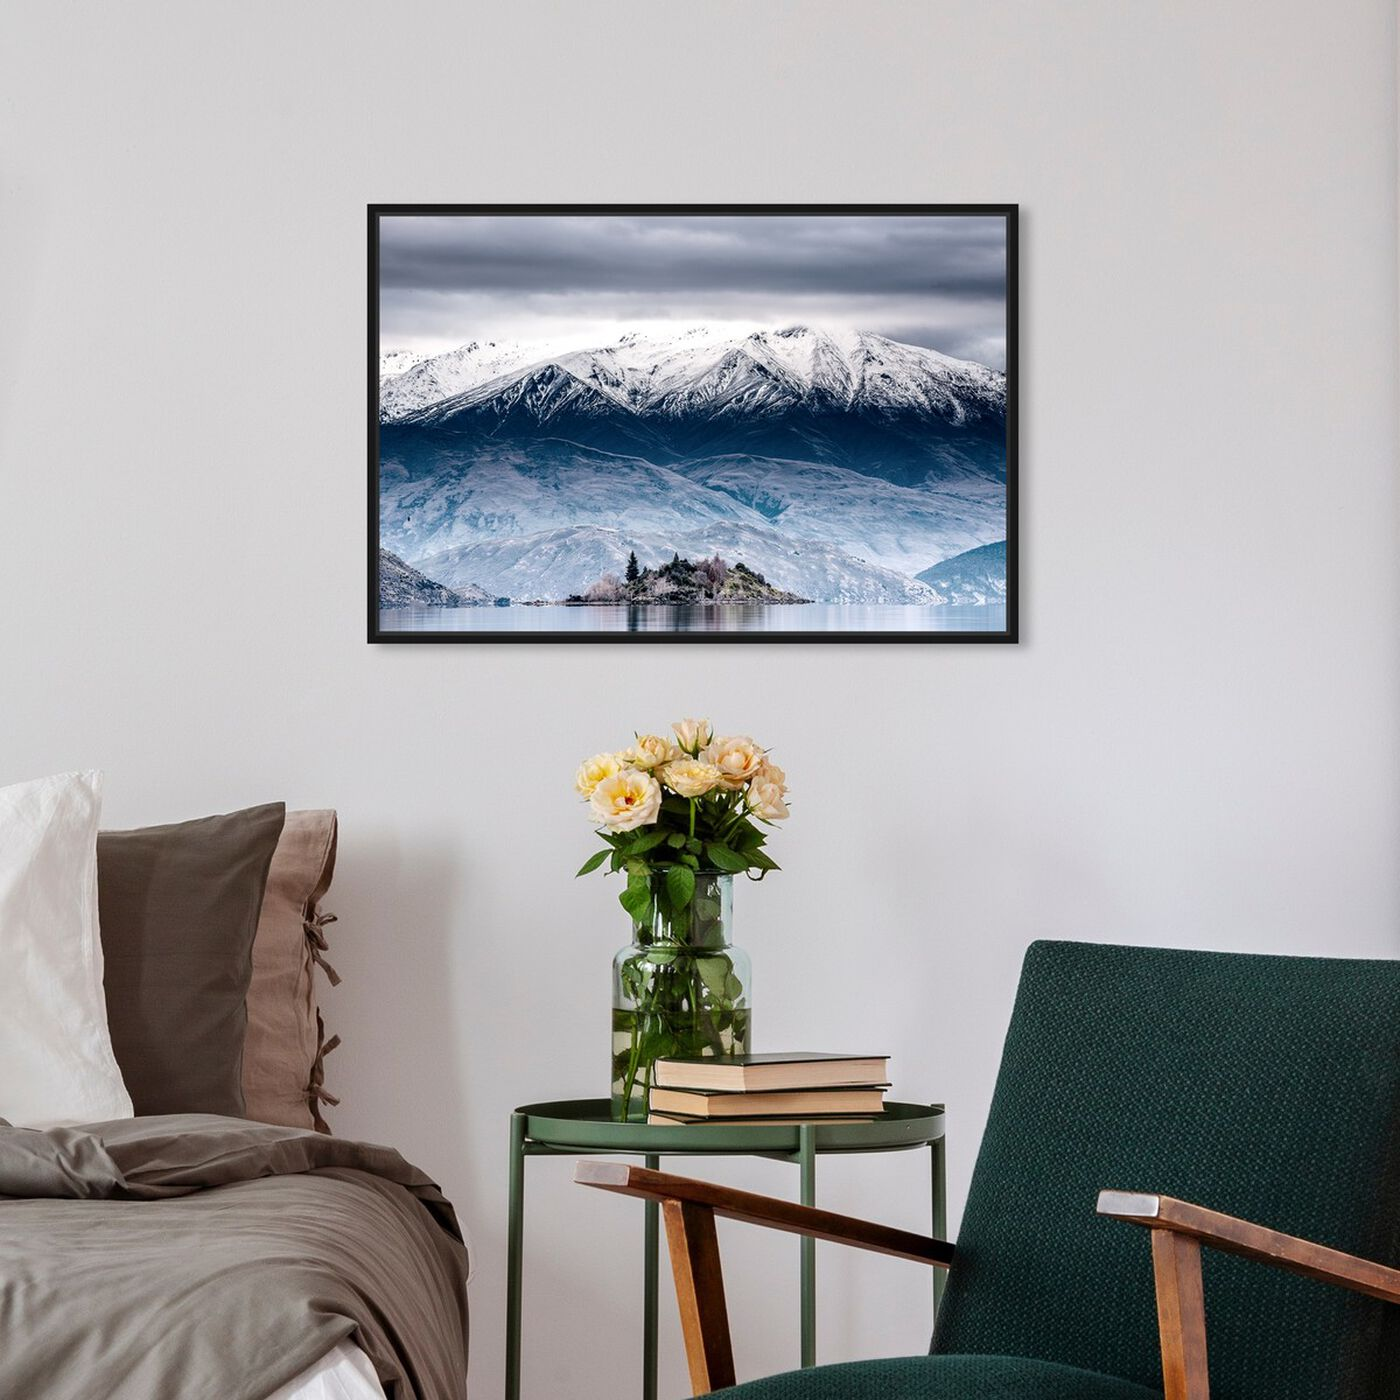 Hanging view of Curro Cardenal - Almaren featuring nature and landscape and mountains art.